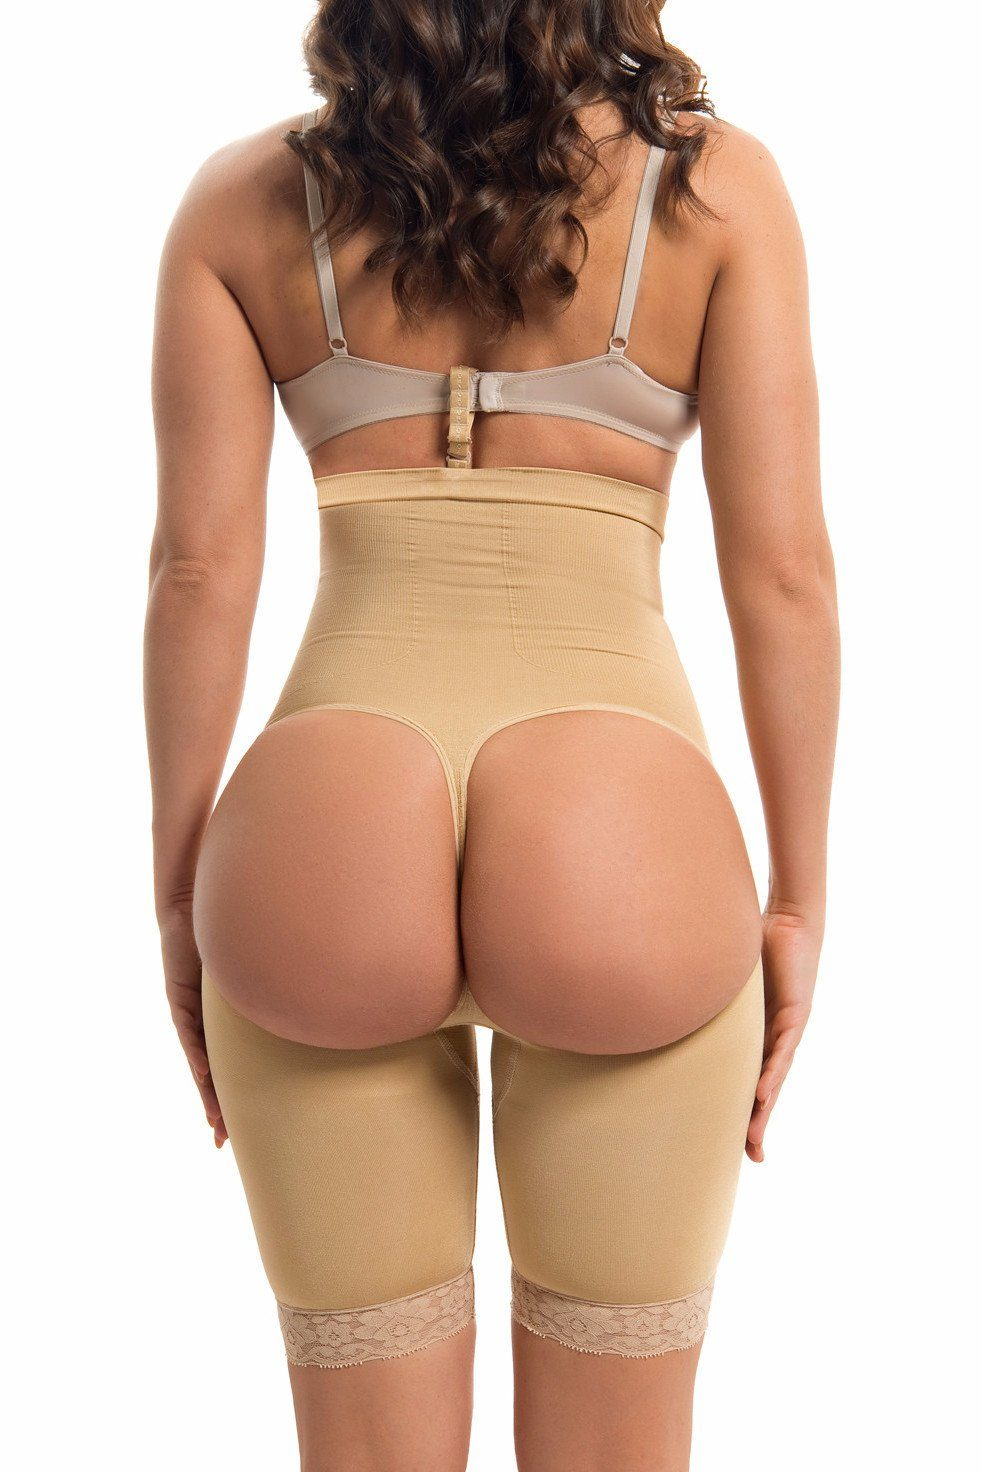 5d140fb86dc81 High Waisted Body Shaper   Butt Lifter NUDE -RESTOCKED – Fashion ...